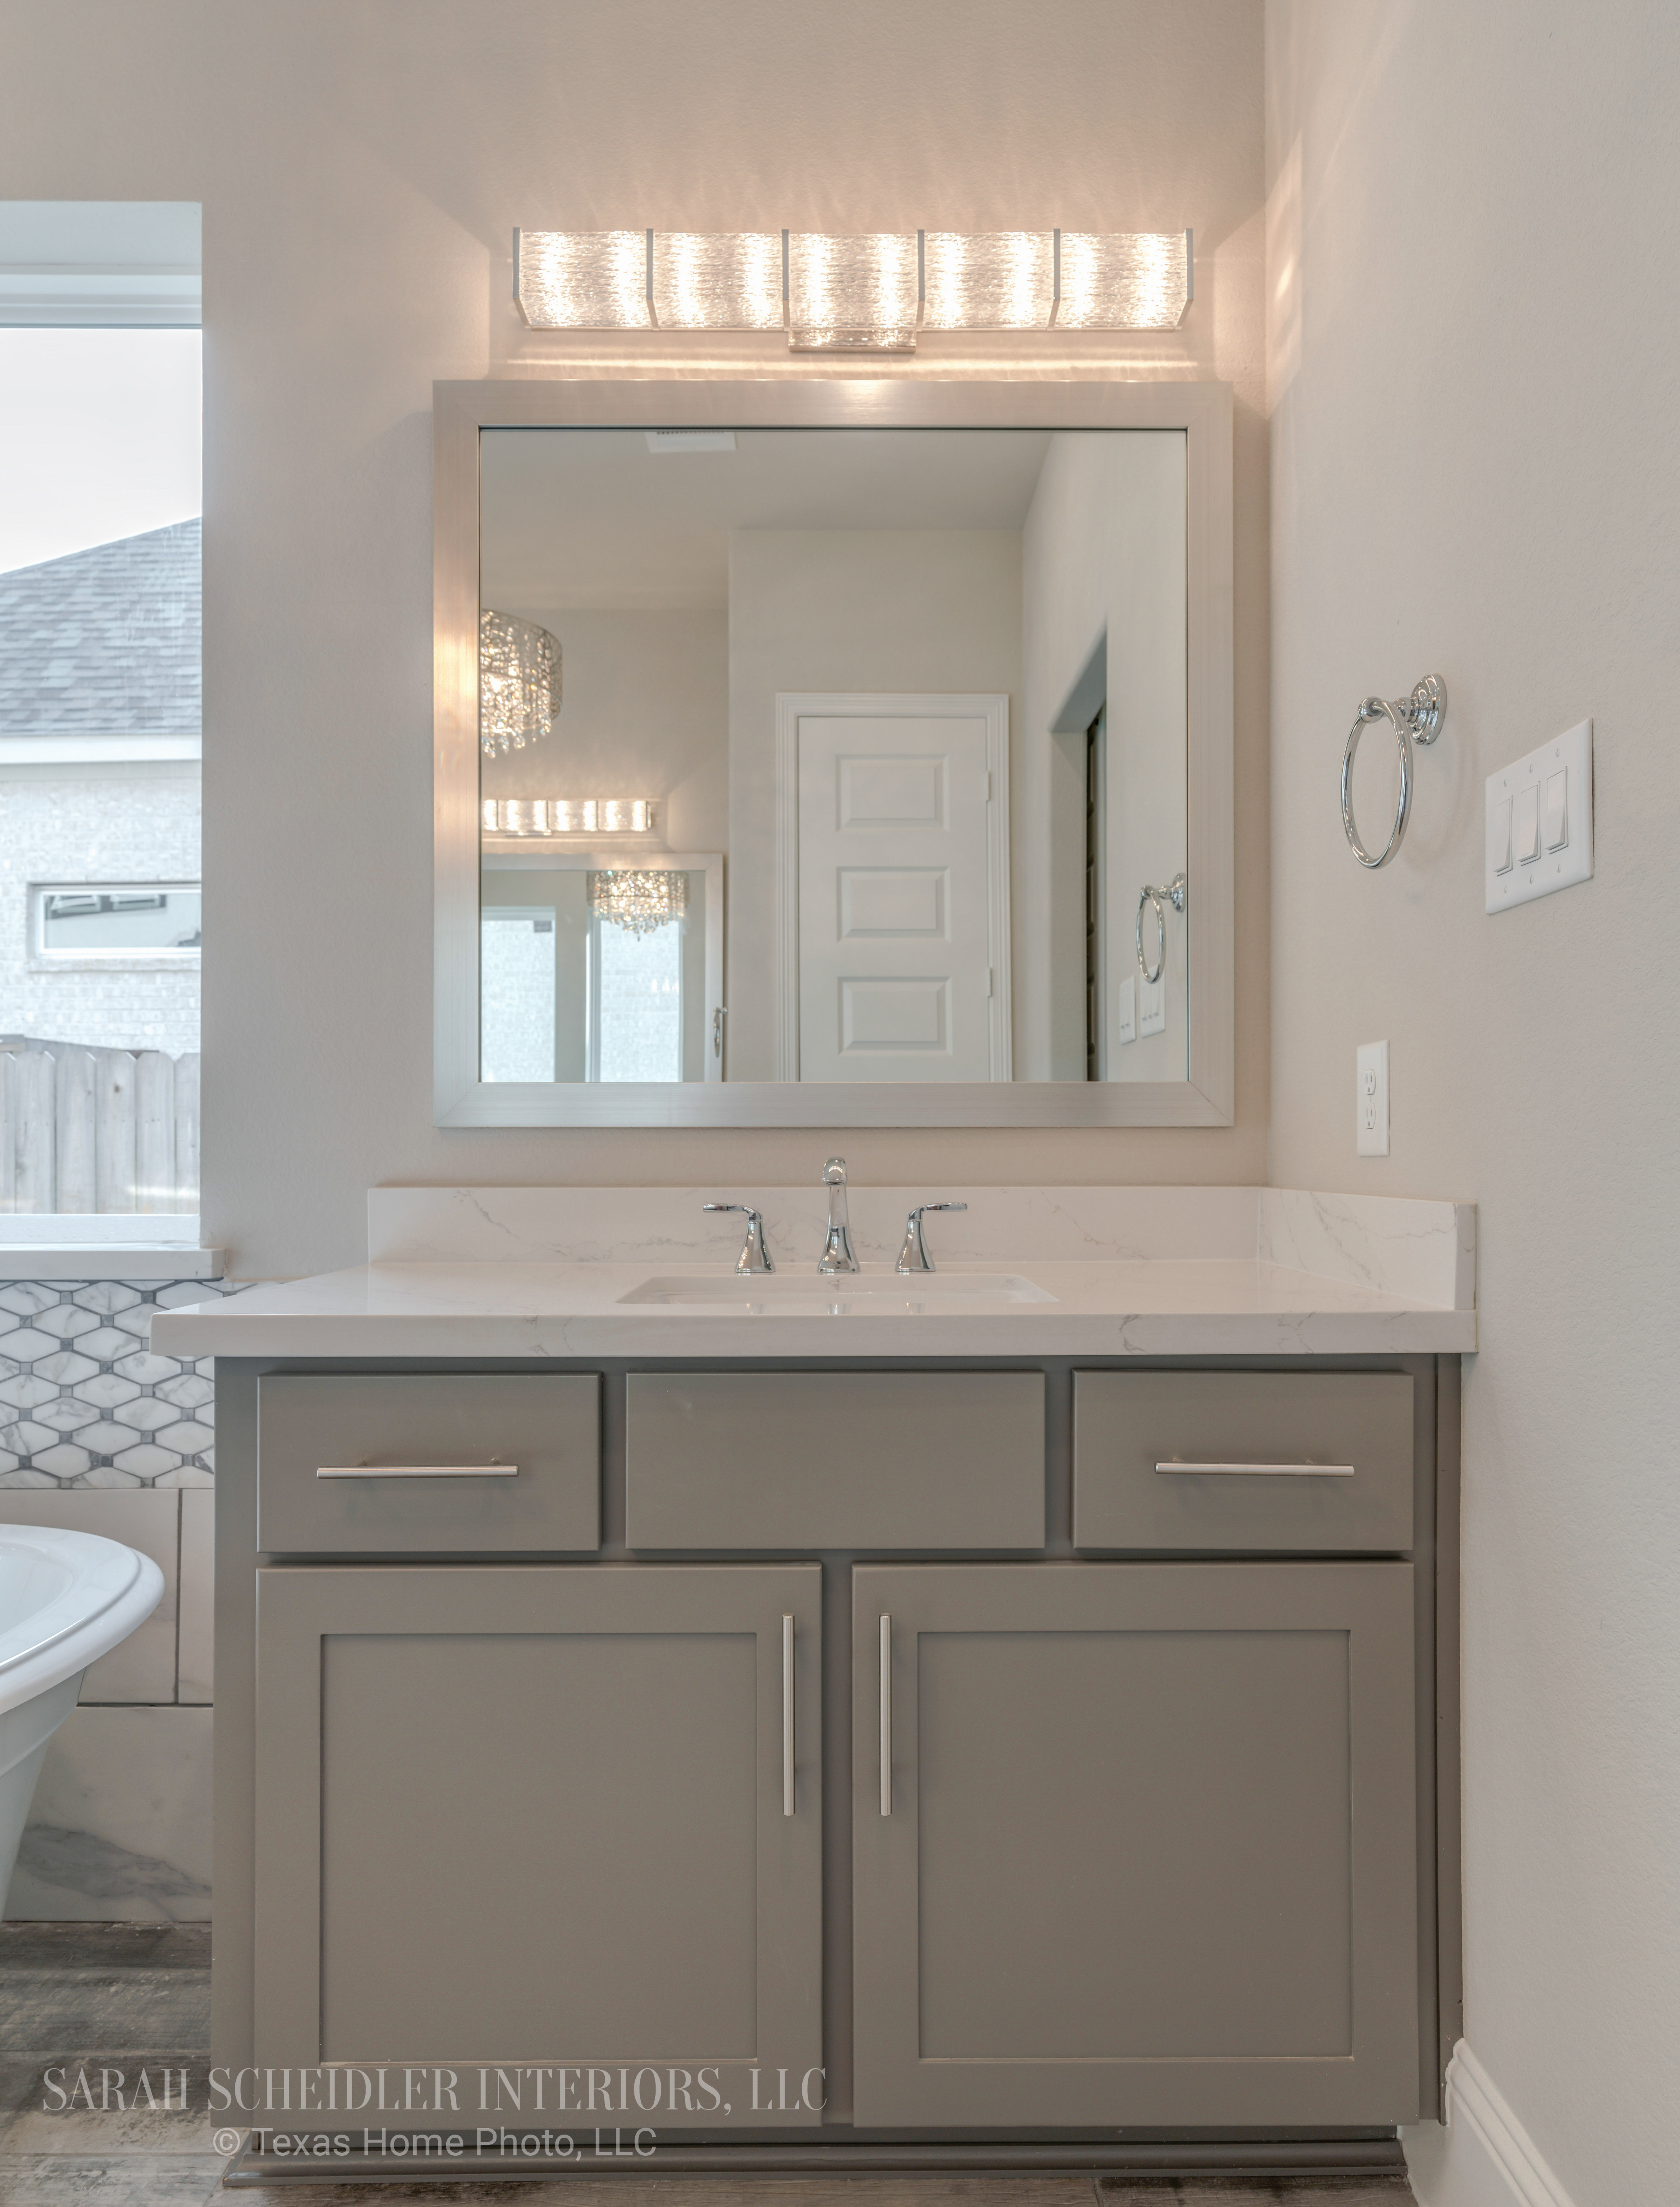 White and Grey Primary Bathroom Vanity (His) with Silestone Quartz Countertops, Chrome Finishes, and Crystal Lighting